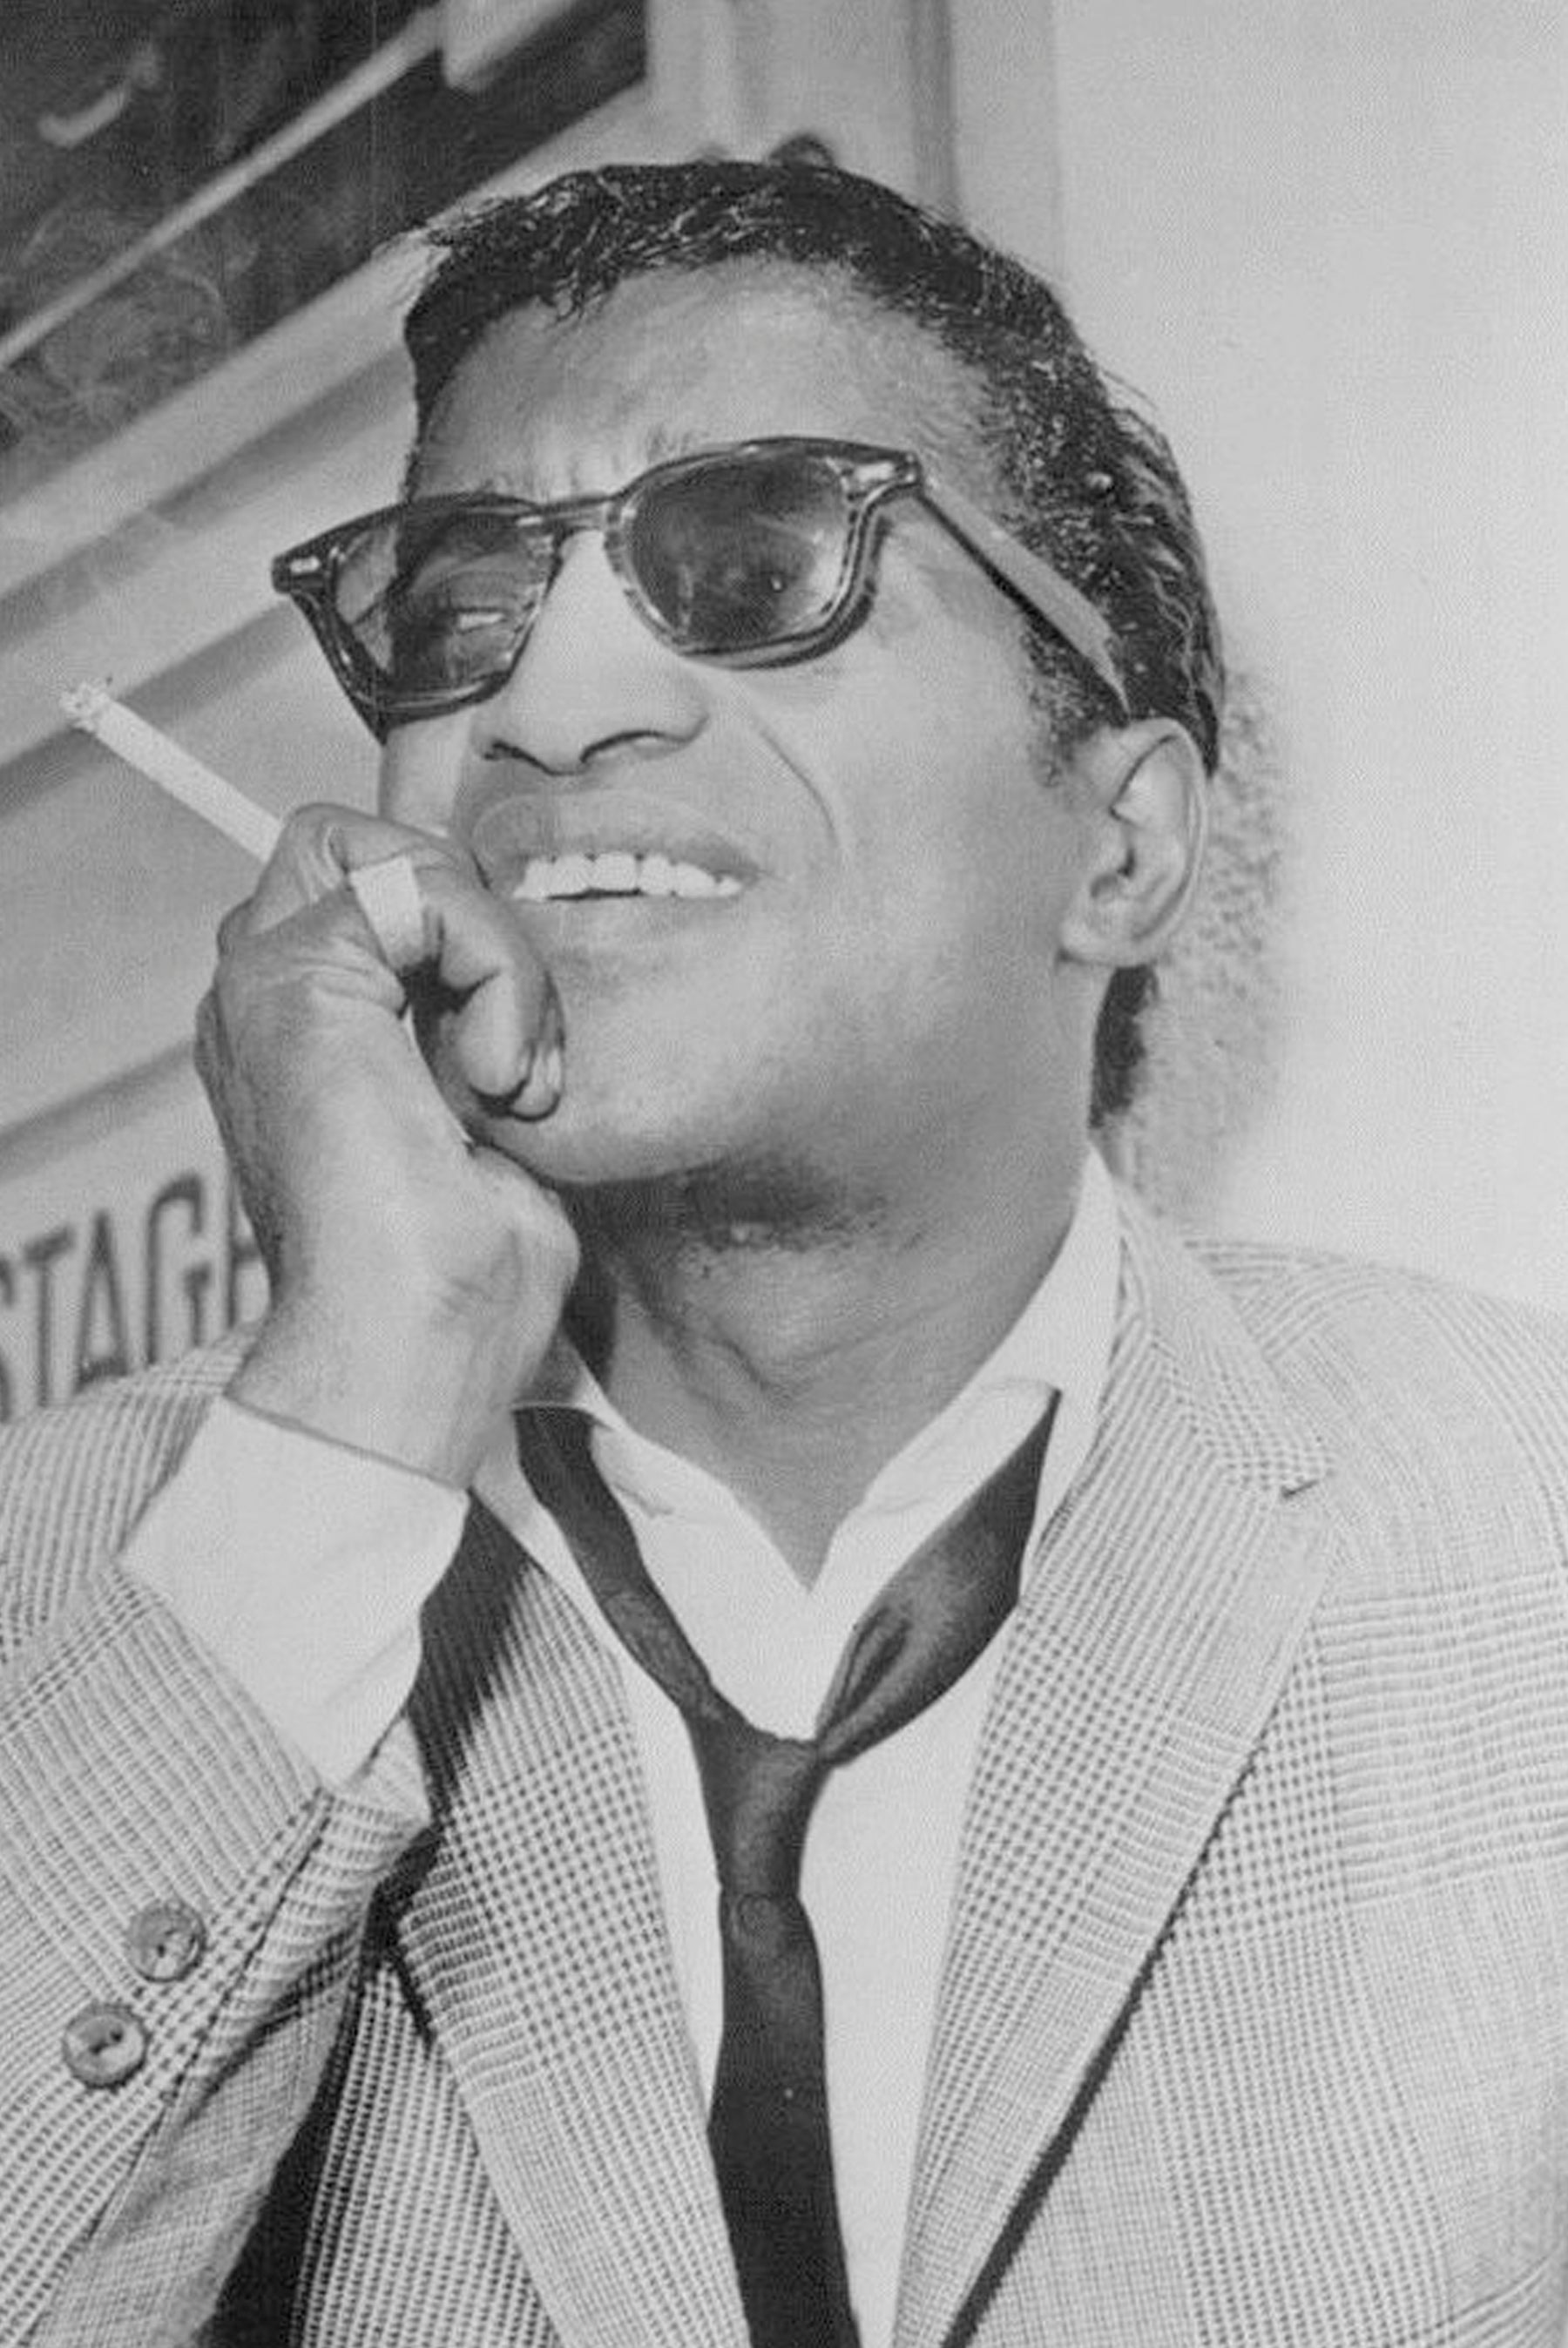 Sammy Davis Jr. wearing glasses